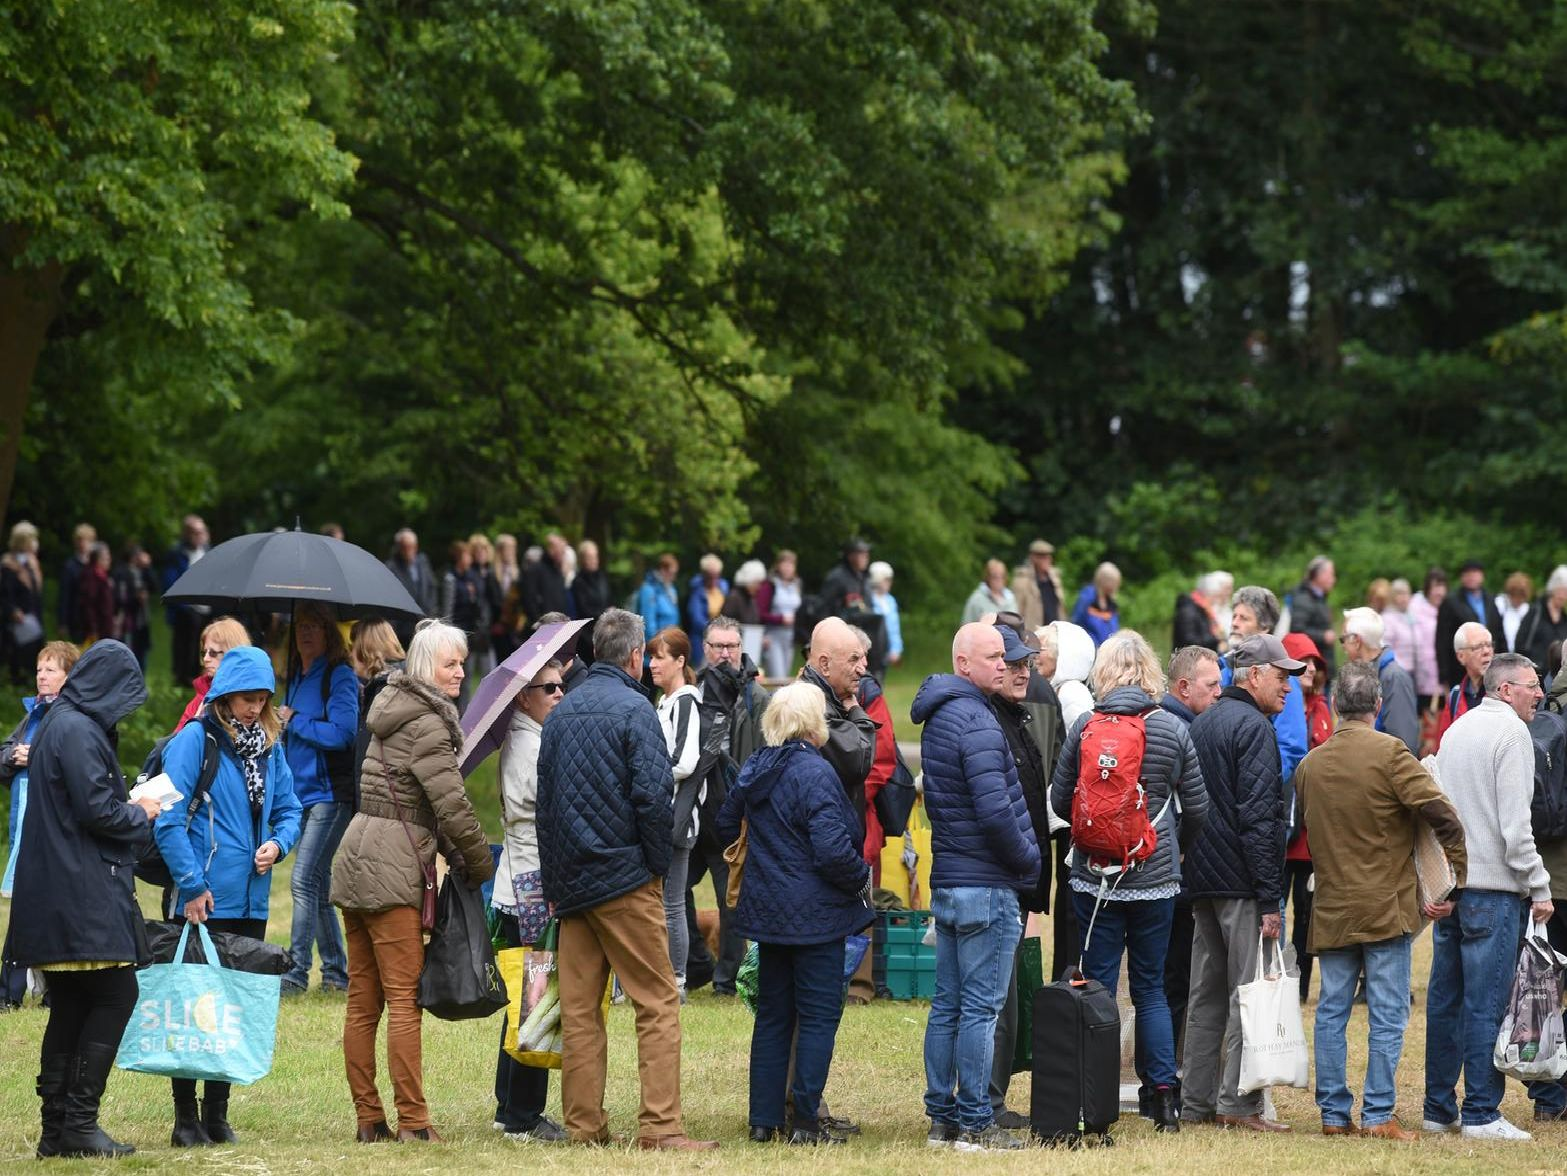 BBC Antiques Roadshow filming at Lytham Hall